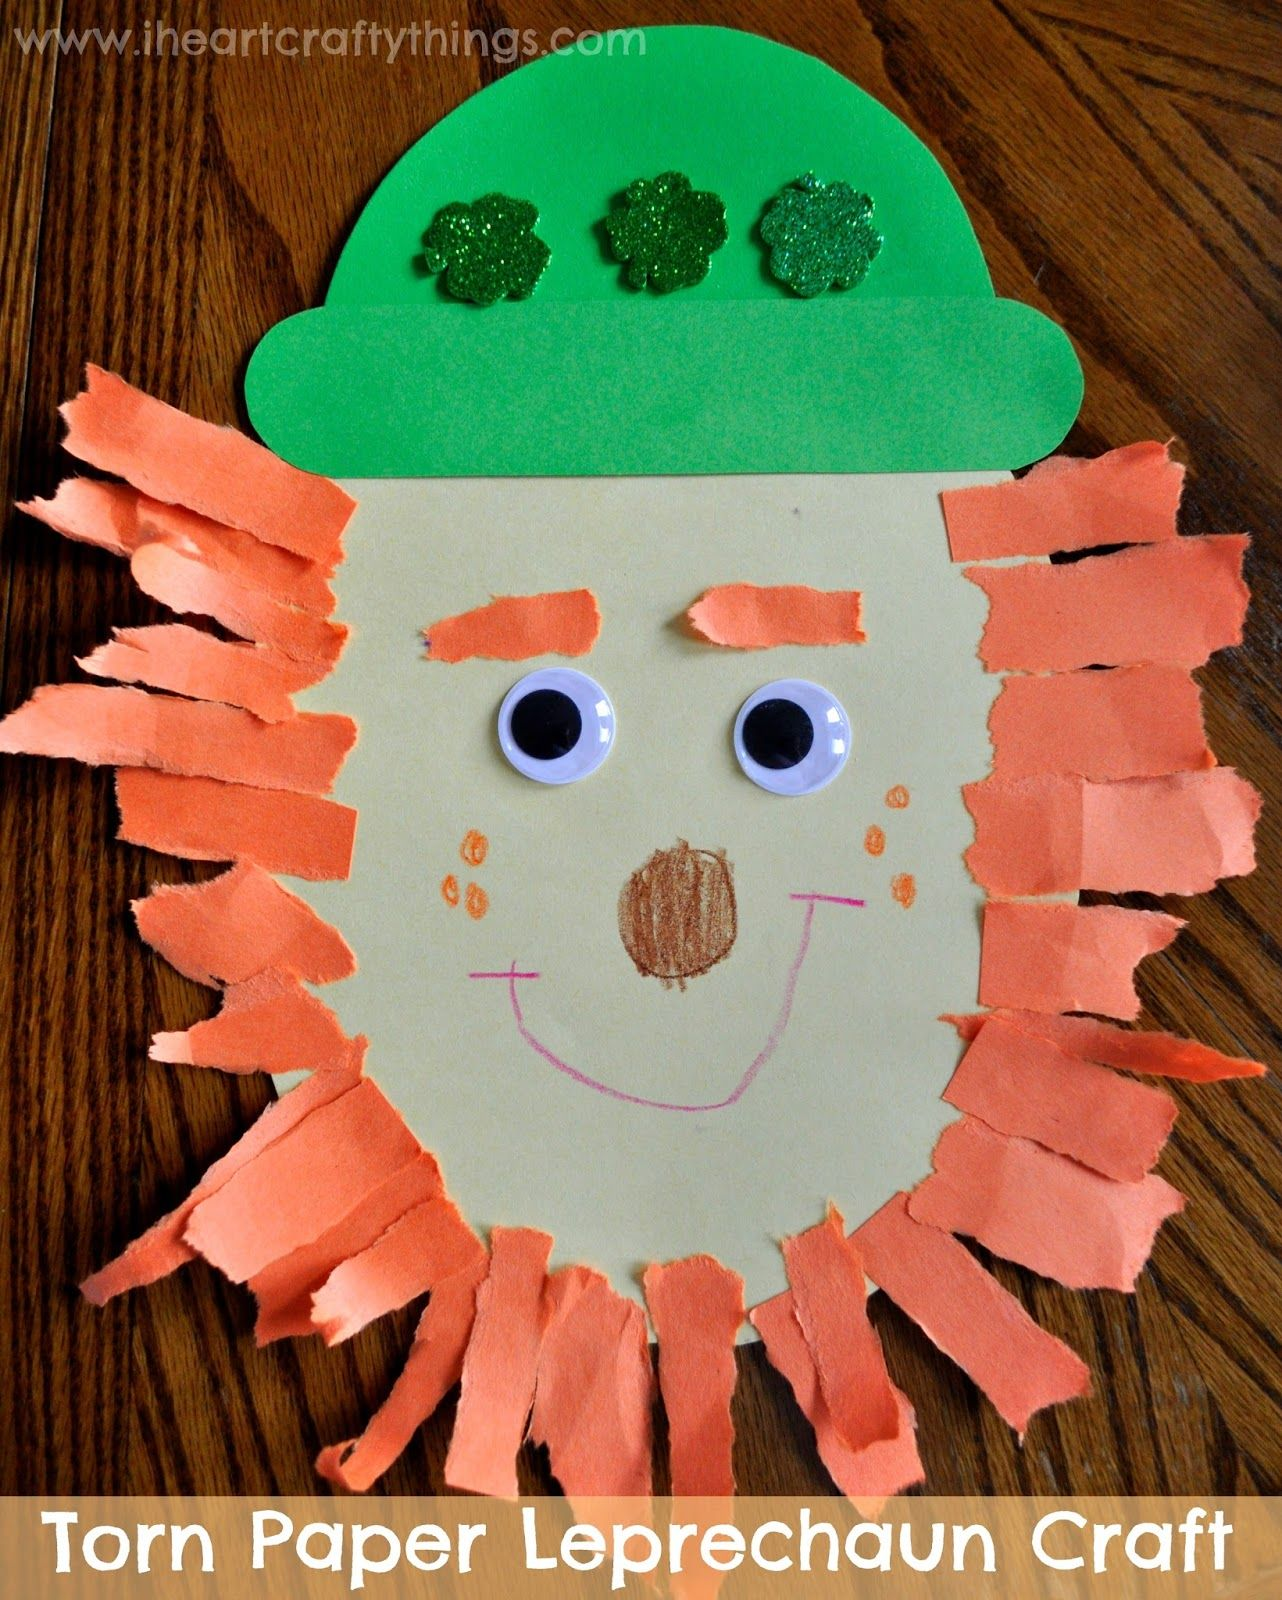 st patrick's day preschool crafts | St. Patrick's Day Preschool Activities- Free Printables